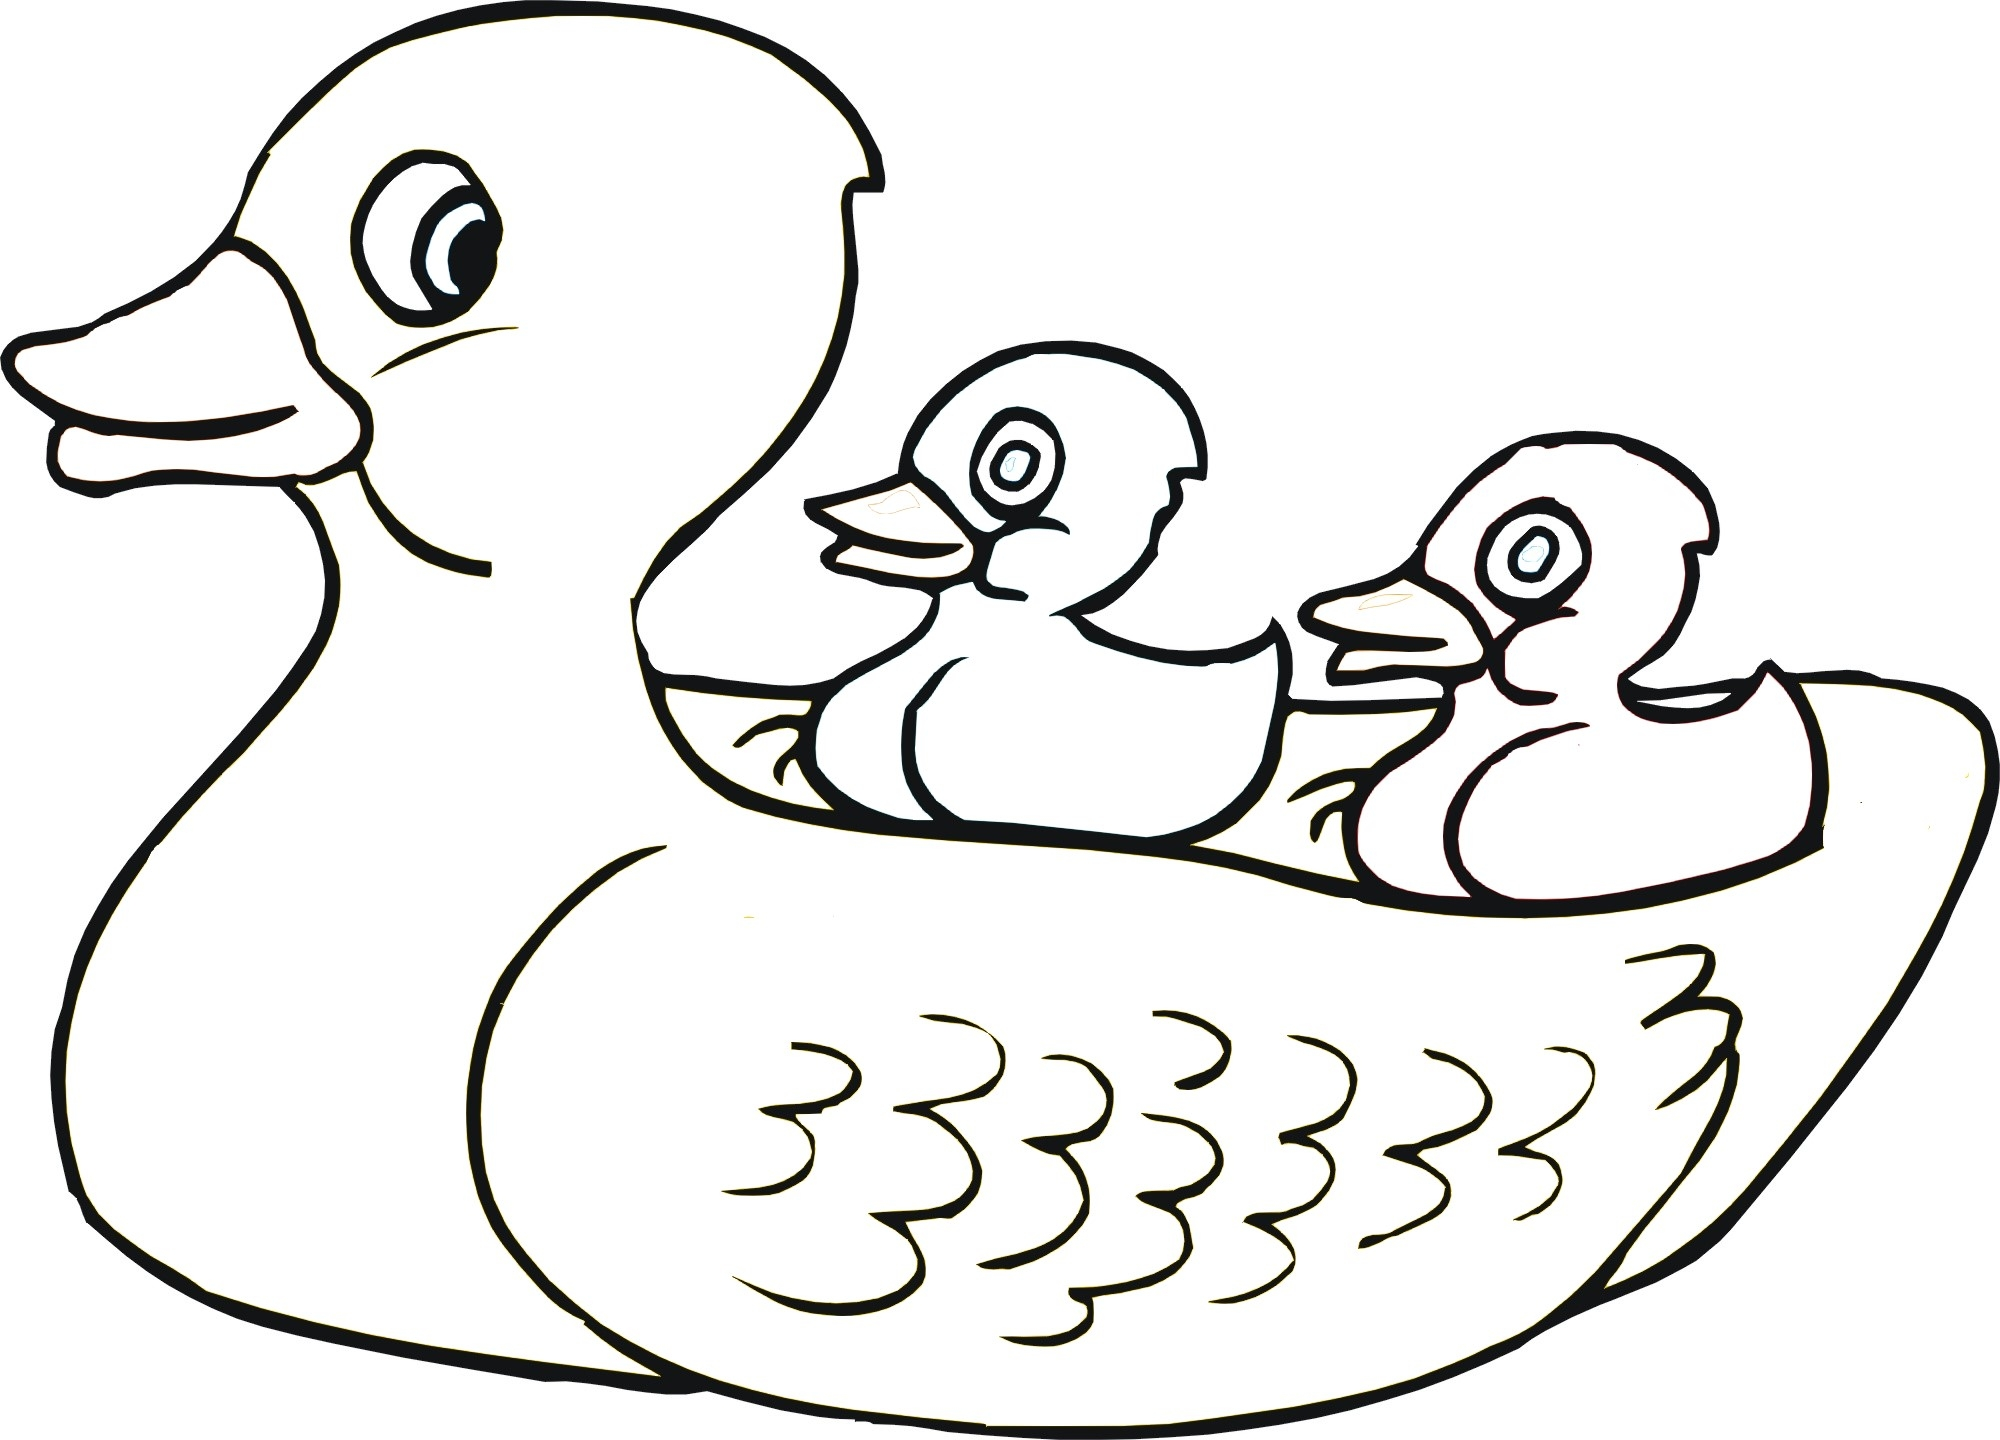 rubber duck coloring page - gallery for rubber duck coloring page